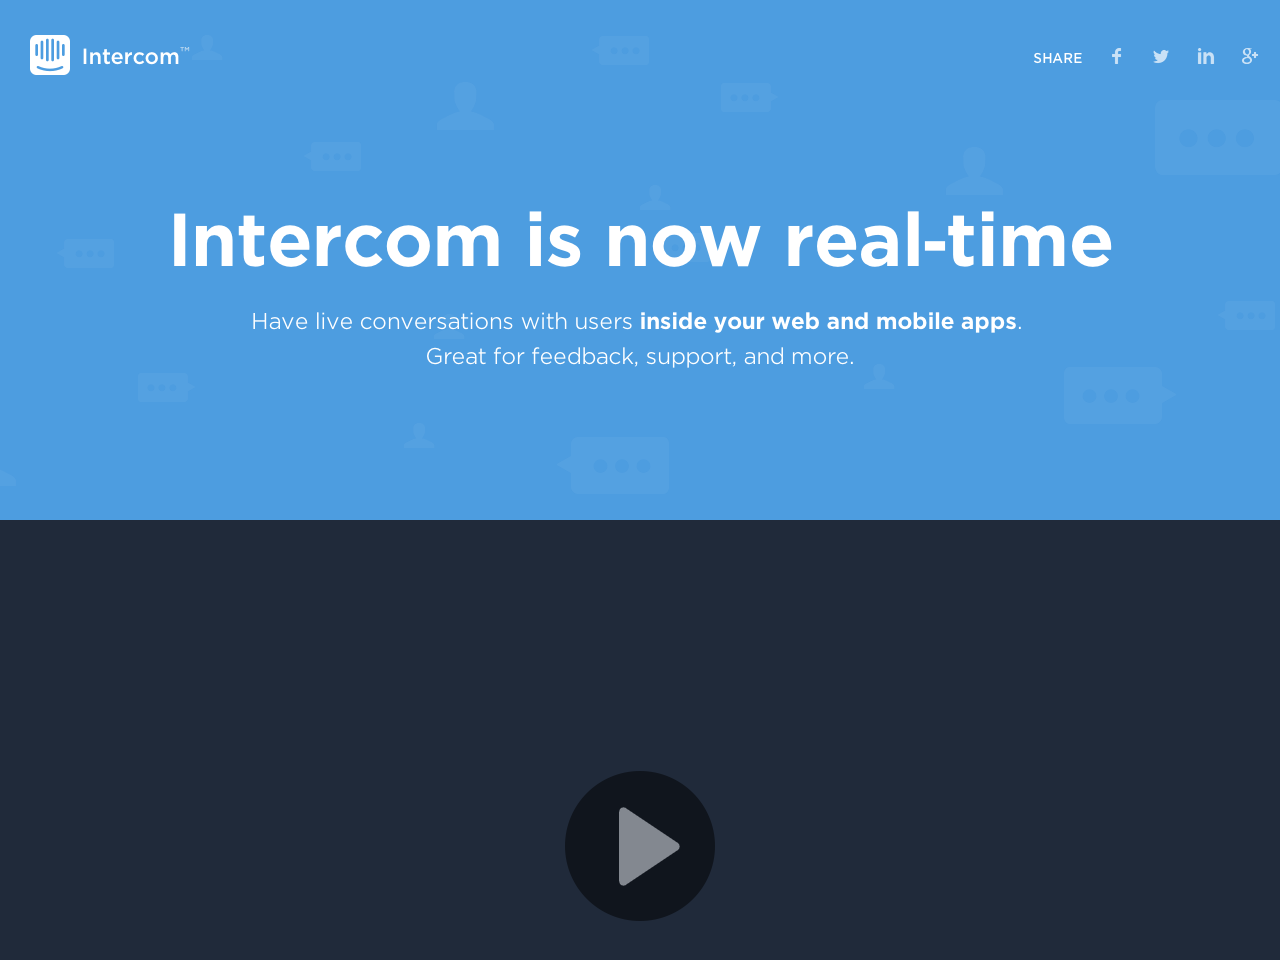 Intercom Real-Time